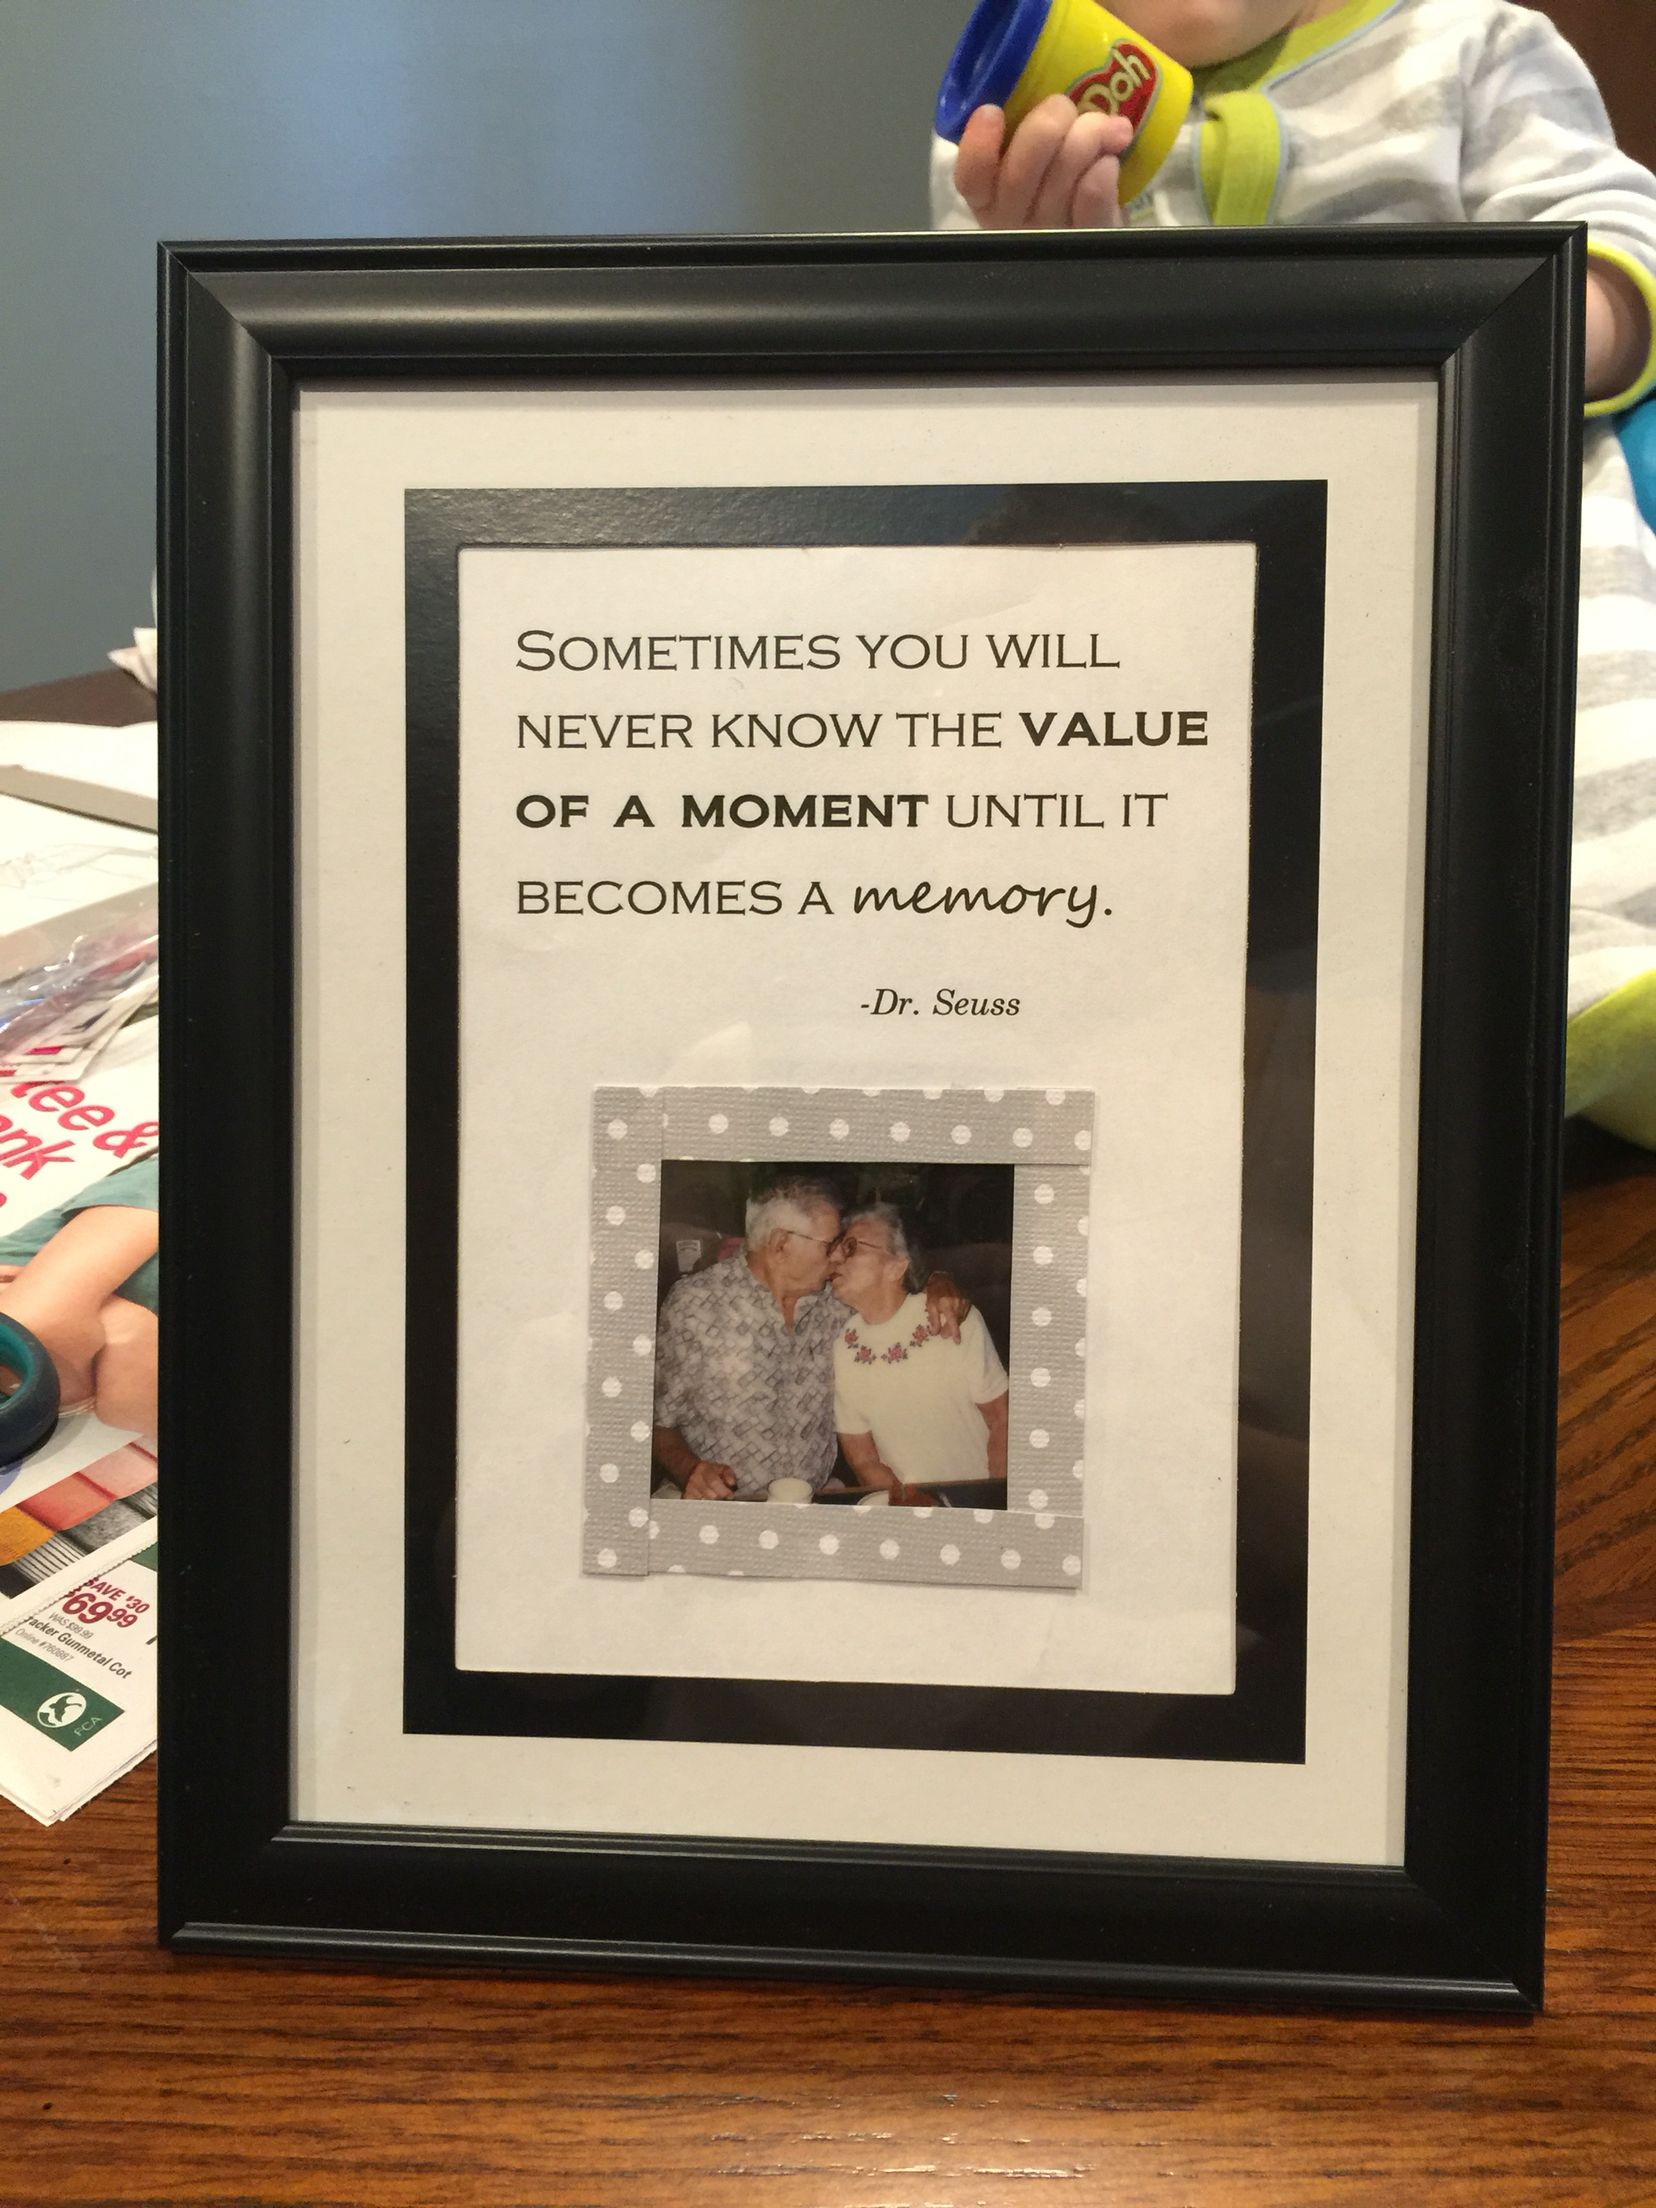 Homemade Memories frame. | Yes I really made that | Pinterest ...